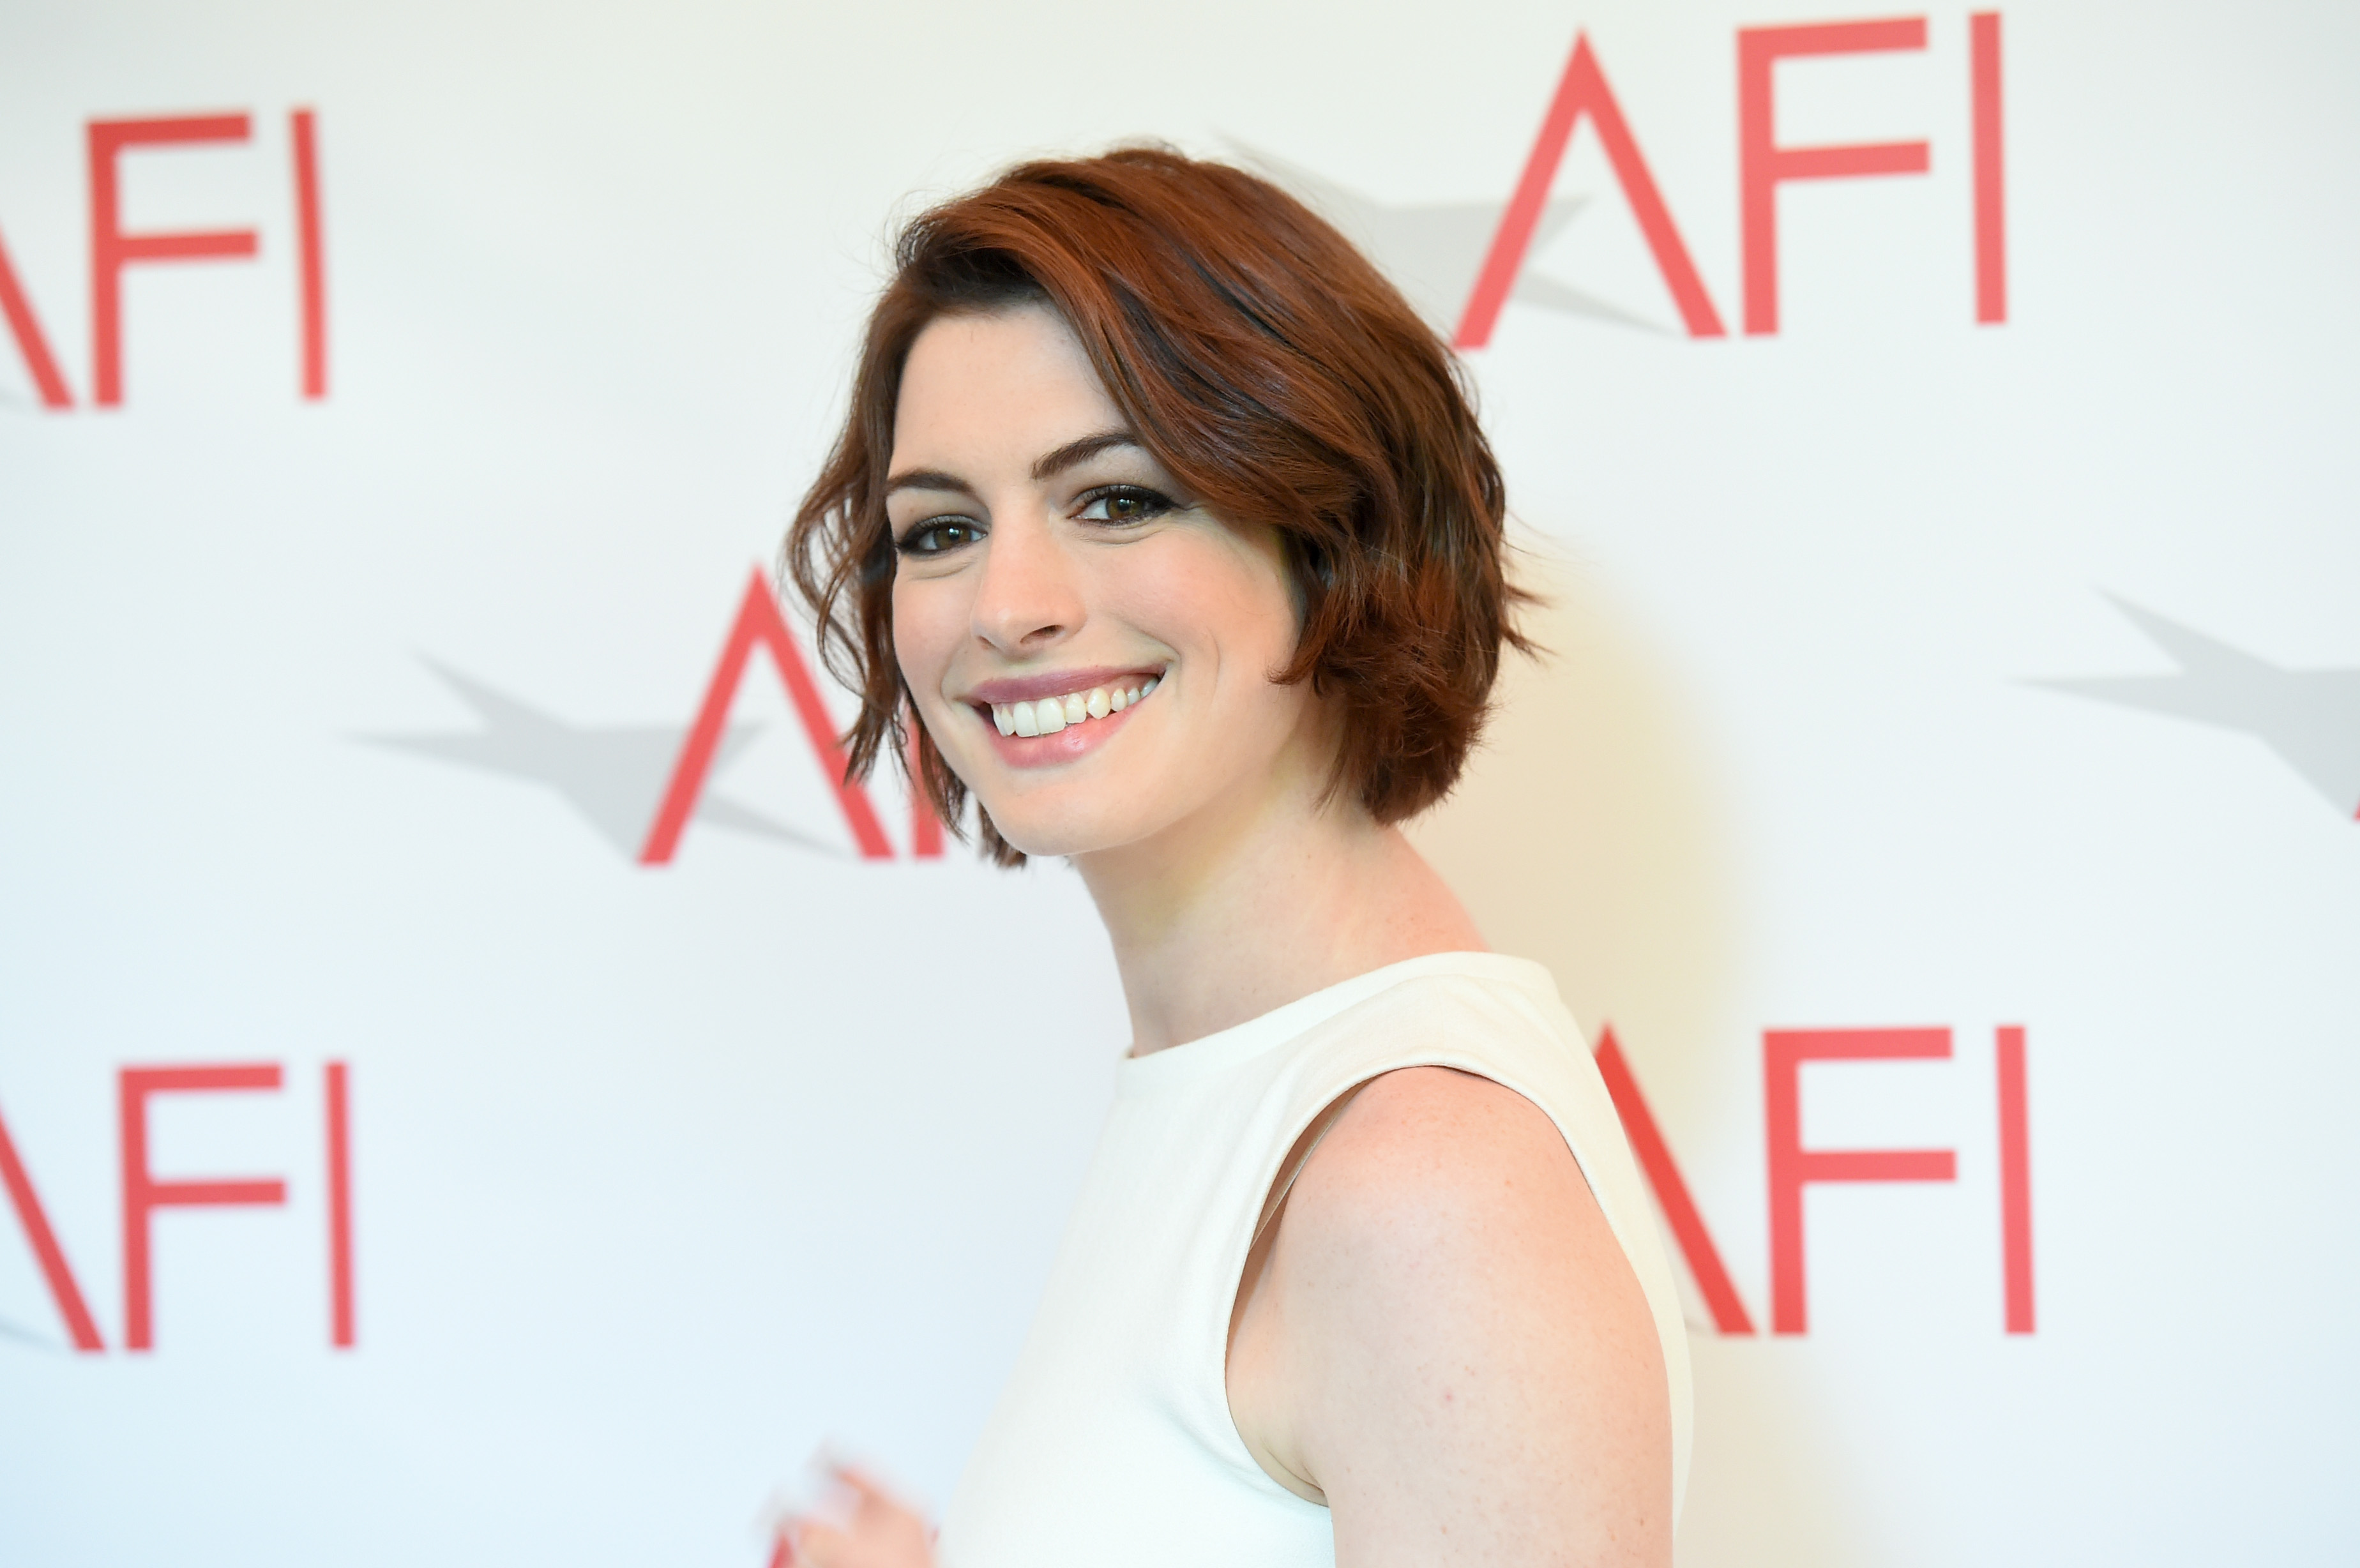 Anne Hathaway has something to say about body shaming, and we couldn't agree more